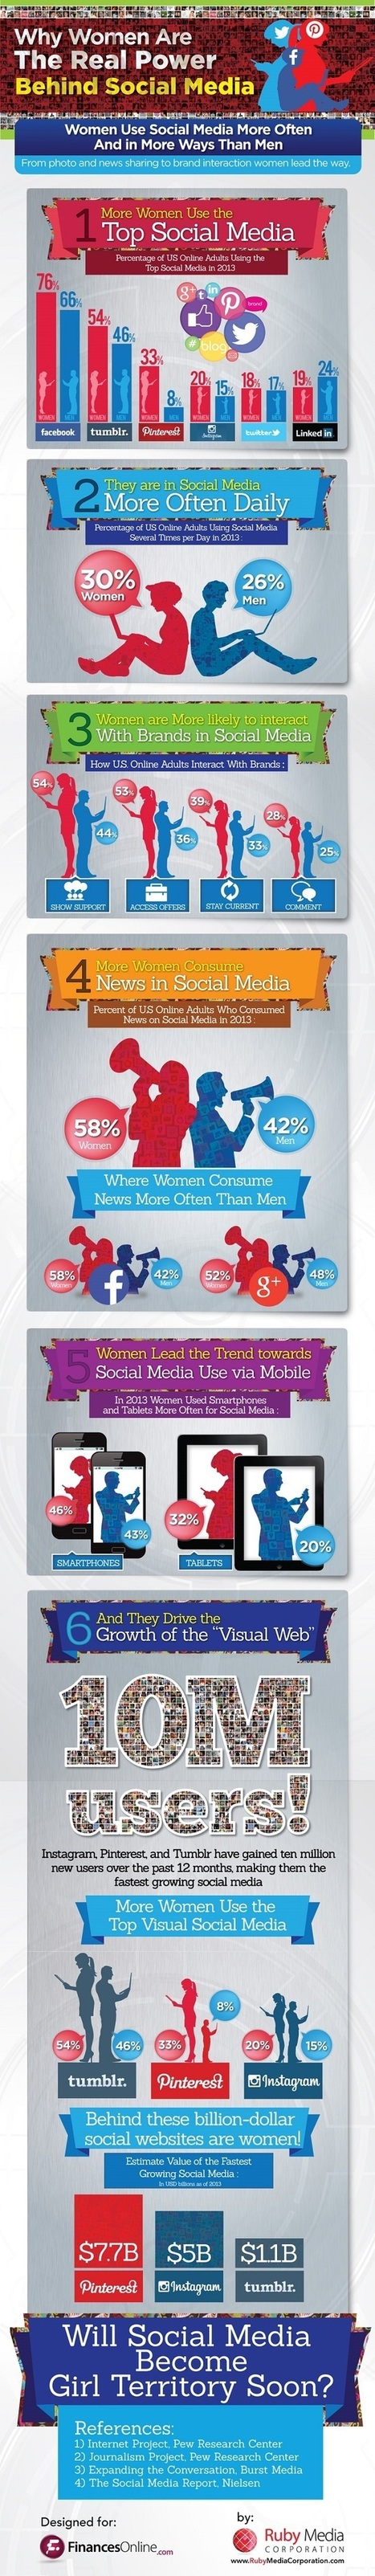 Social Media Demography: Understanding Popular Lifestyle Trends - Arabian Gazette | Social media! | Scoop.it